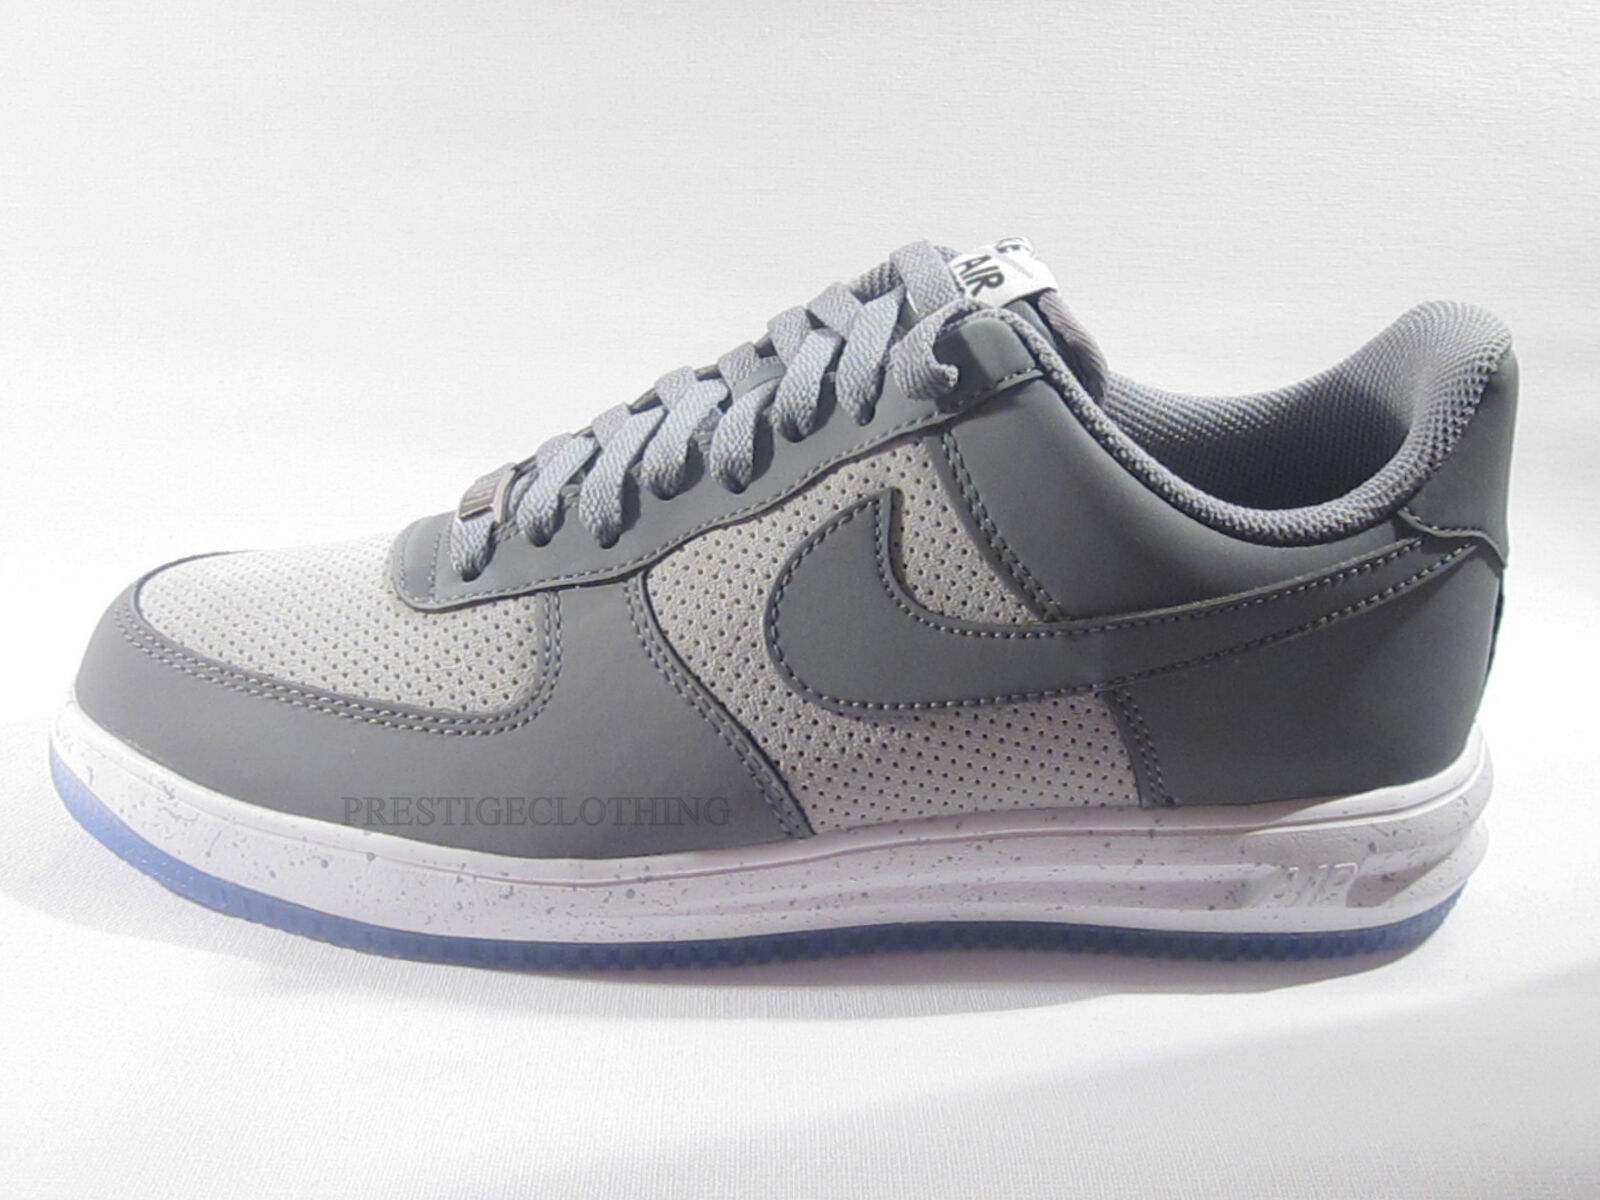 HOMMES ORIGINAL NIKE LUNAR AIR FORCE 1 '14 COOL gris blanc TRAINERS 654256006